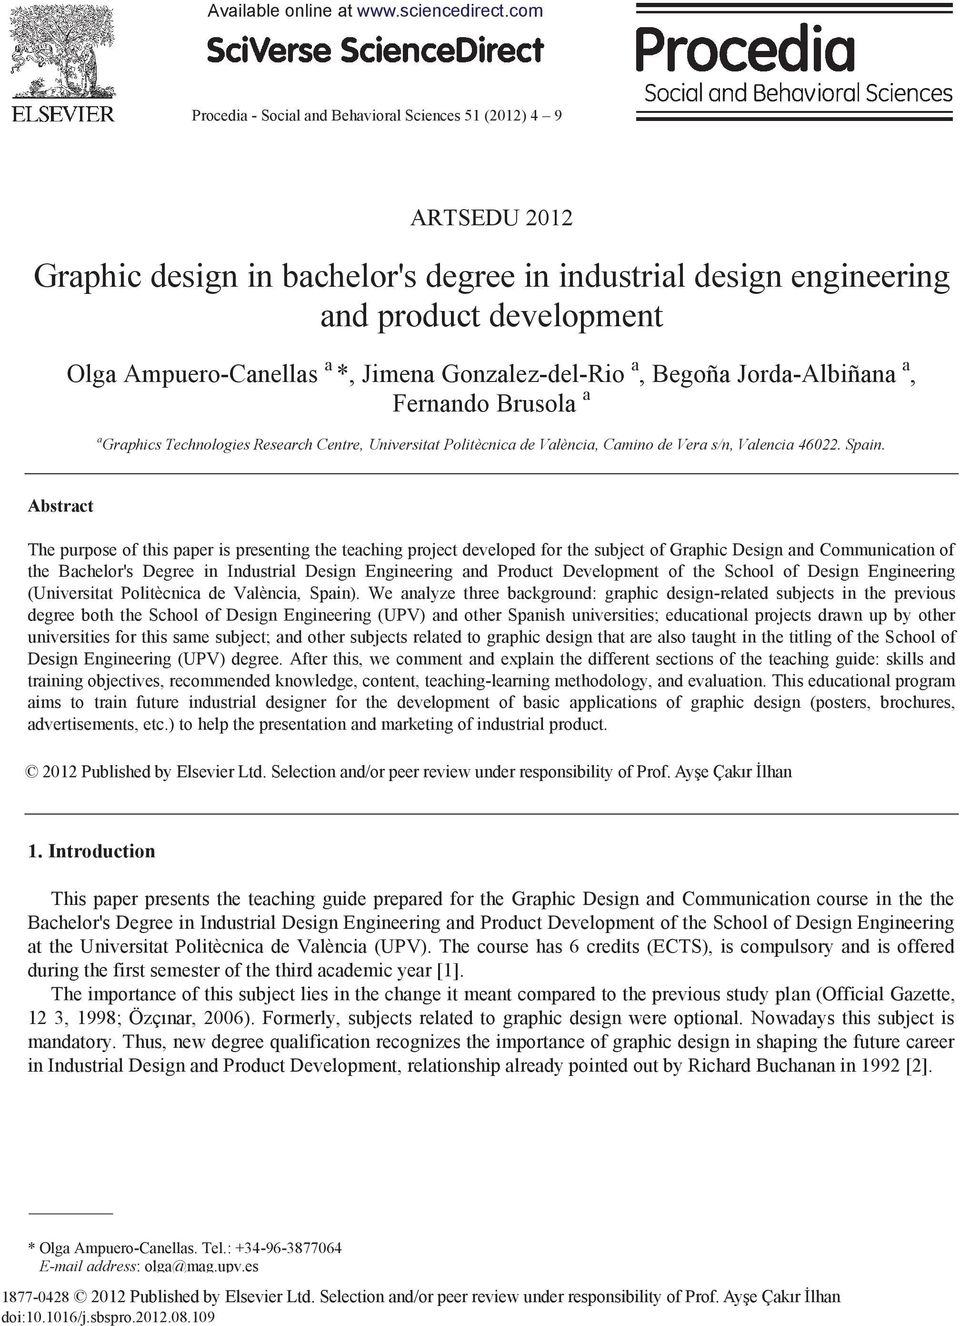 Graphic Design In Bachelor S Degree In Industrial Design Engineering And Product Development Pdf Free Download